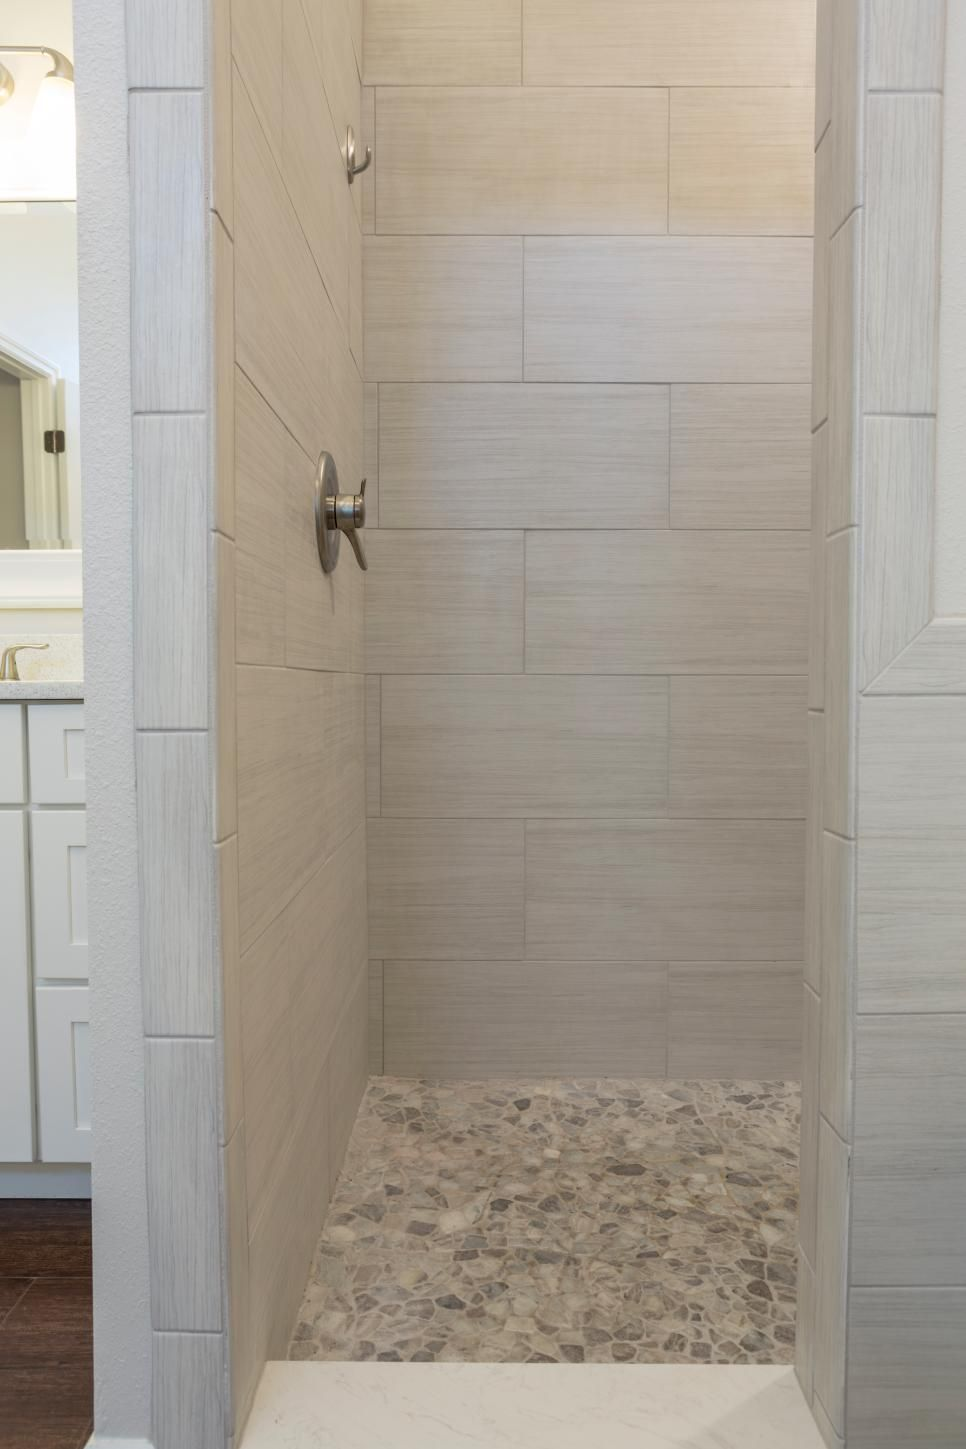 Sleek yet soft gray tiles carve out a gorgeous walkin shower in this transitional bathroom